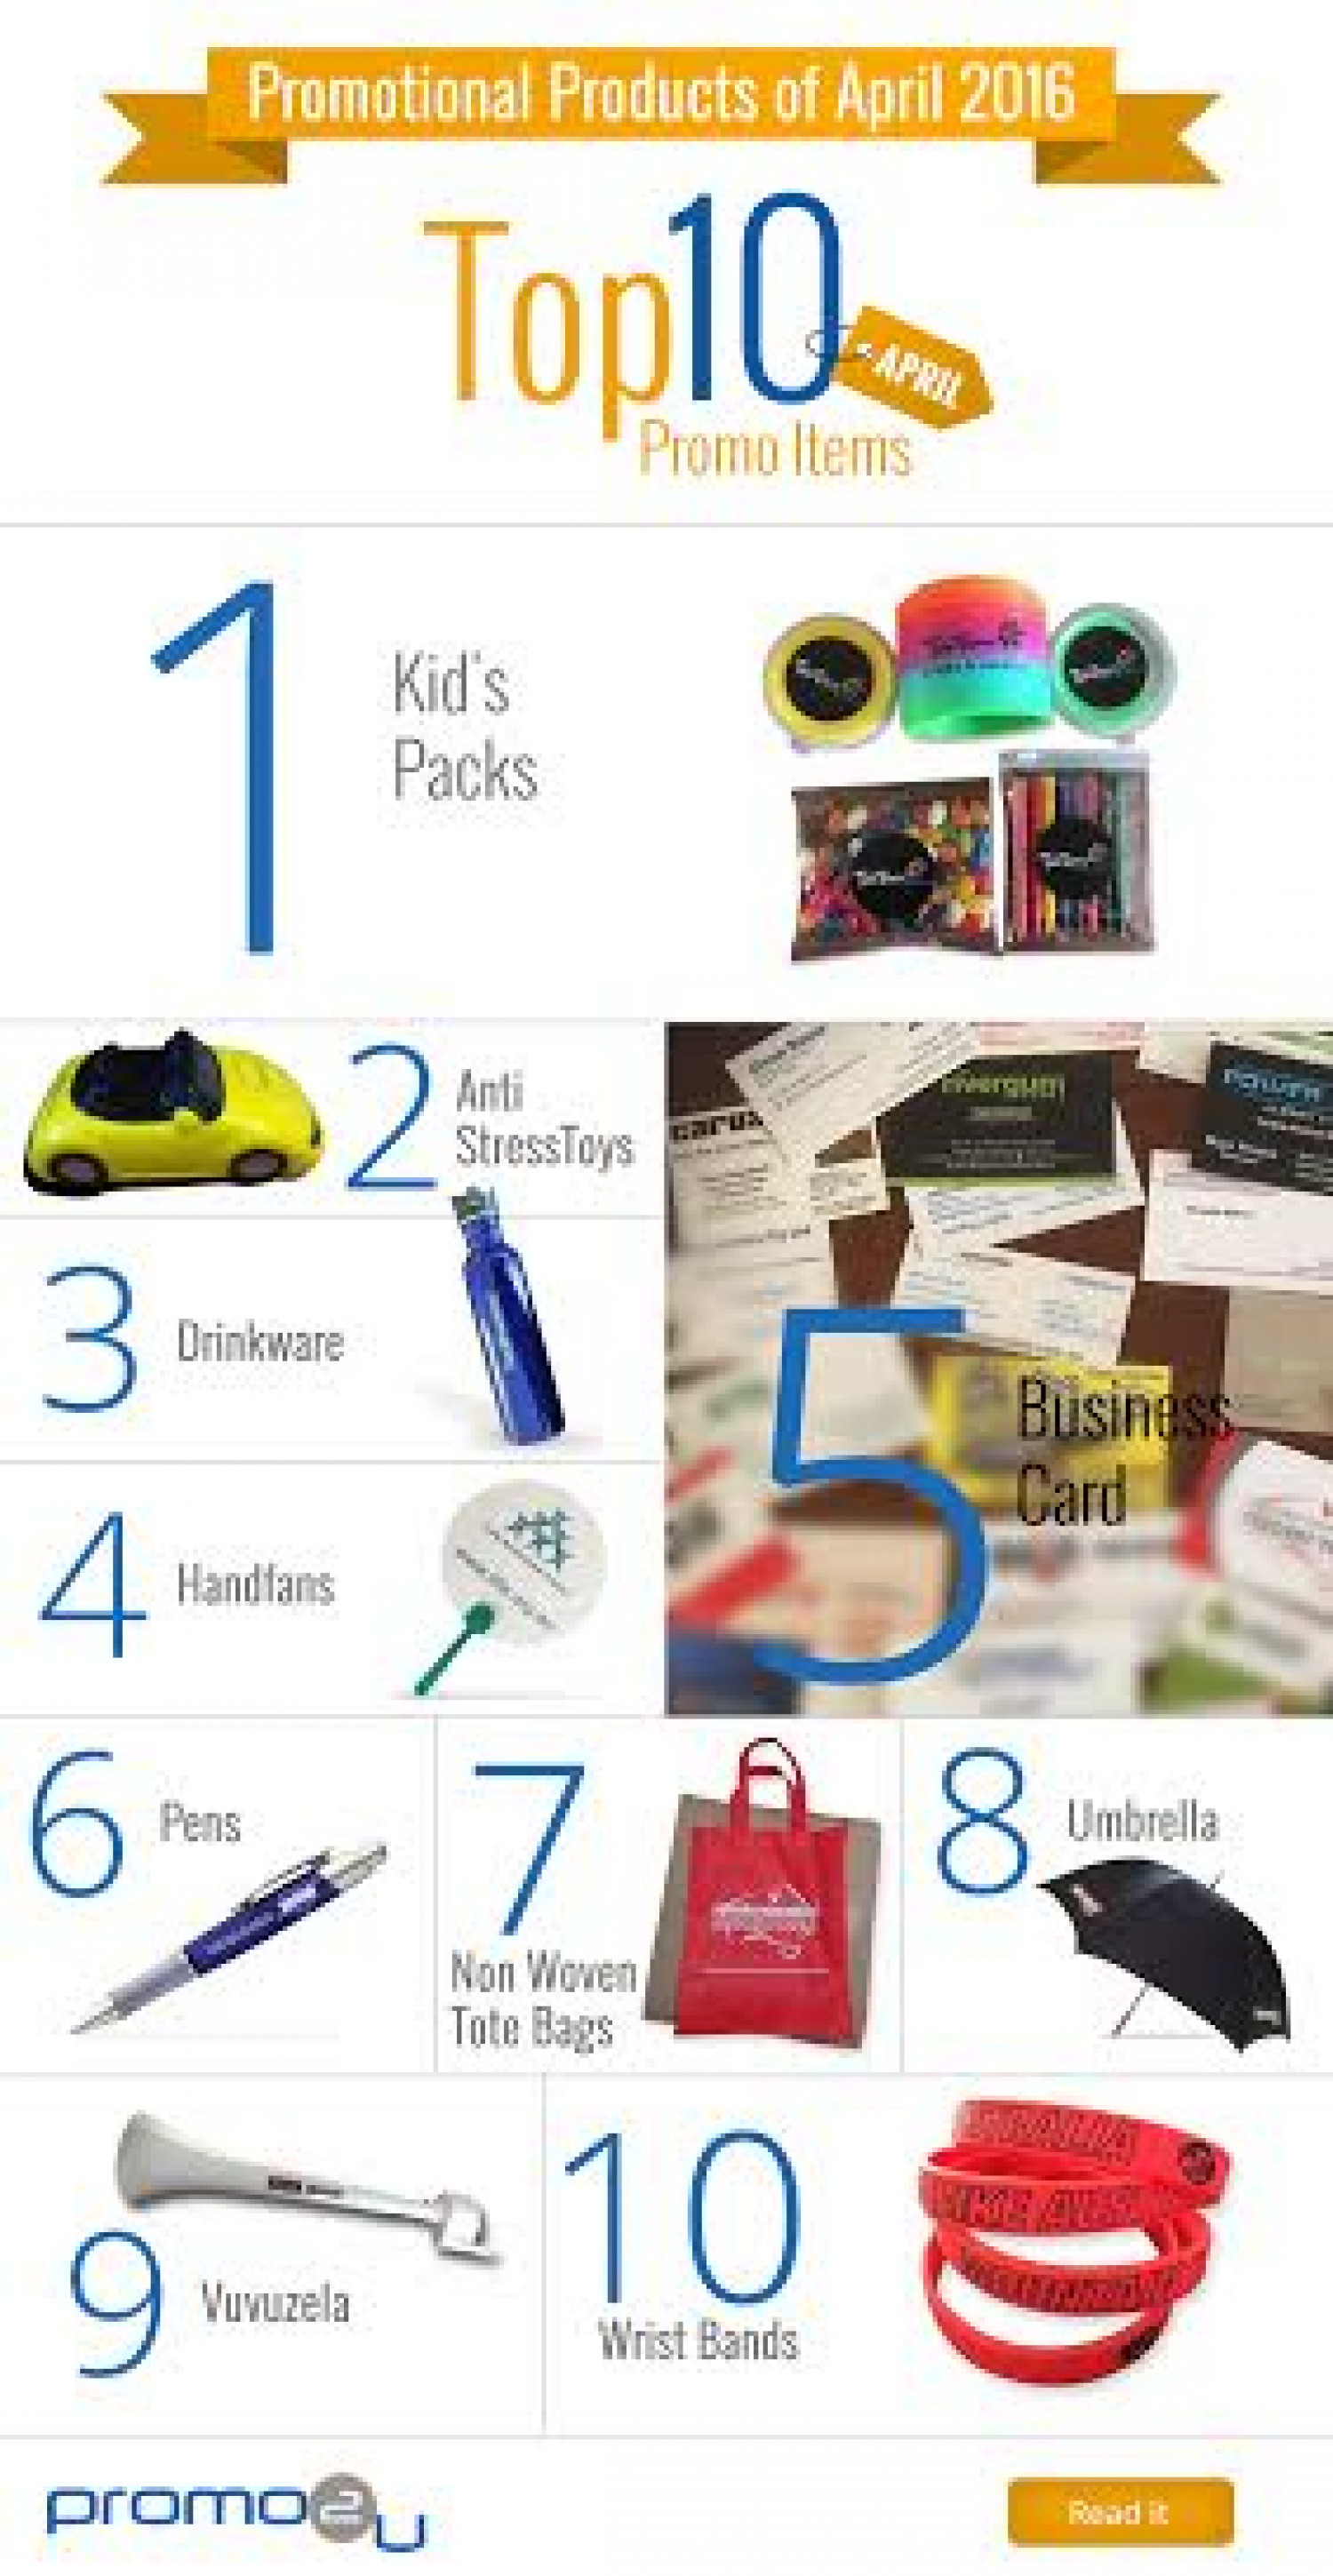 Top 10 Promotional Products Of 2016 Infographic